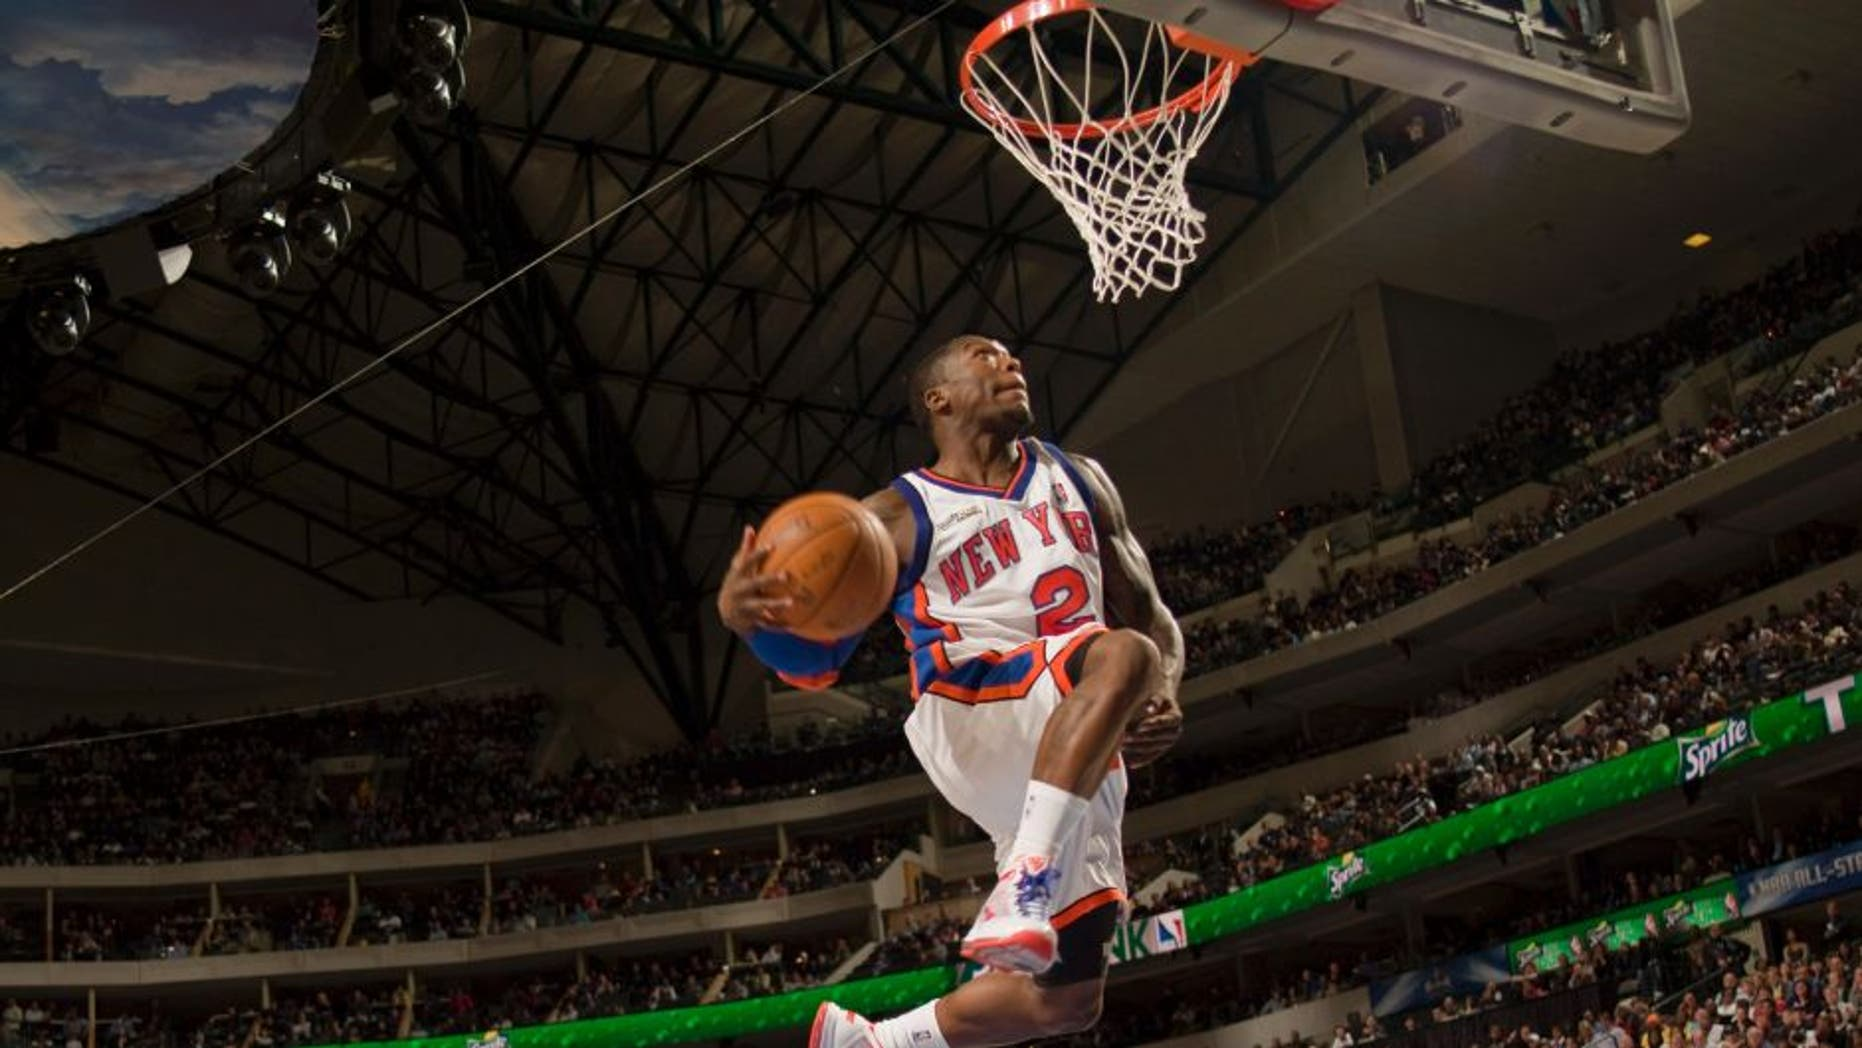 DALLAS - FEBRUARY 13: Nate Robinson #2 of the New York Knicks dunks during the Sprite Slam Dunk Contest on All-Star Saturday Night as part of the 2010 NBA All-Star Weekend at the American Airlines Center on February 13, 2010 in Dallas, Texas. NOTE TO USER: User expressly acknowledges and agrees that, by downloading and or using this photograph, User is consenting to the terms and conditions of the Getty Images License Agreement. Mandatory Copyright Notice: Copyright 2010 NBAE (Photo by Glenn James/NBAE via Getty Images)